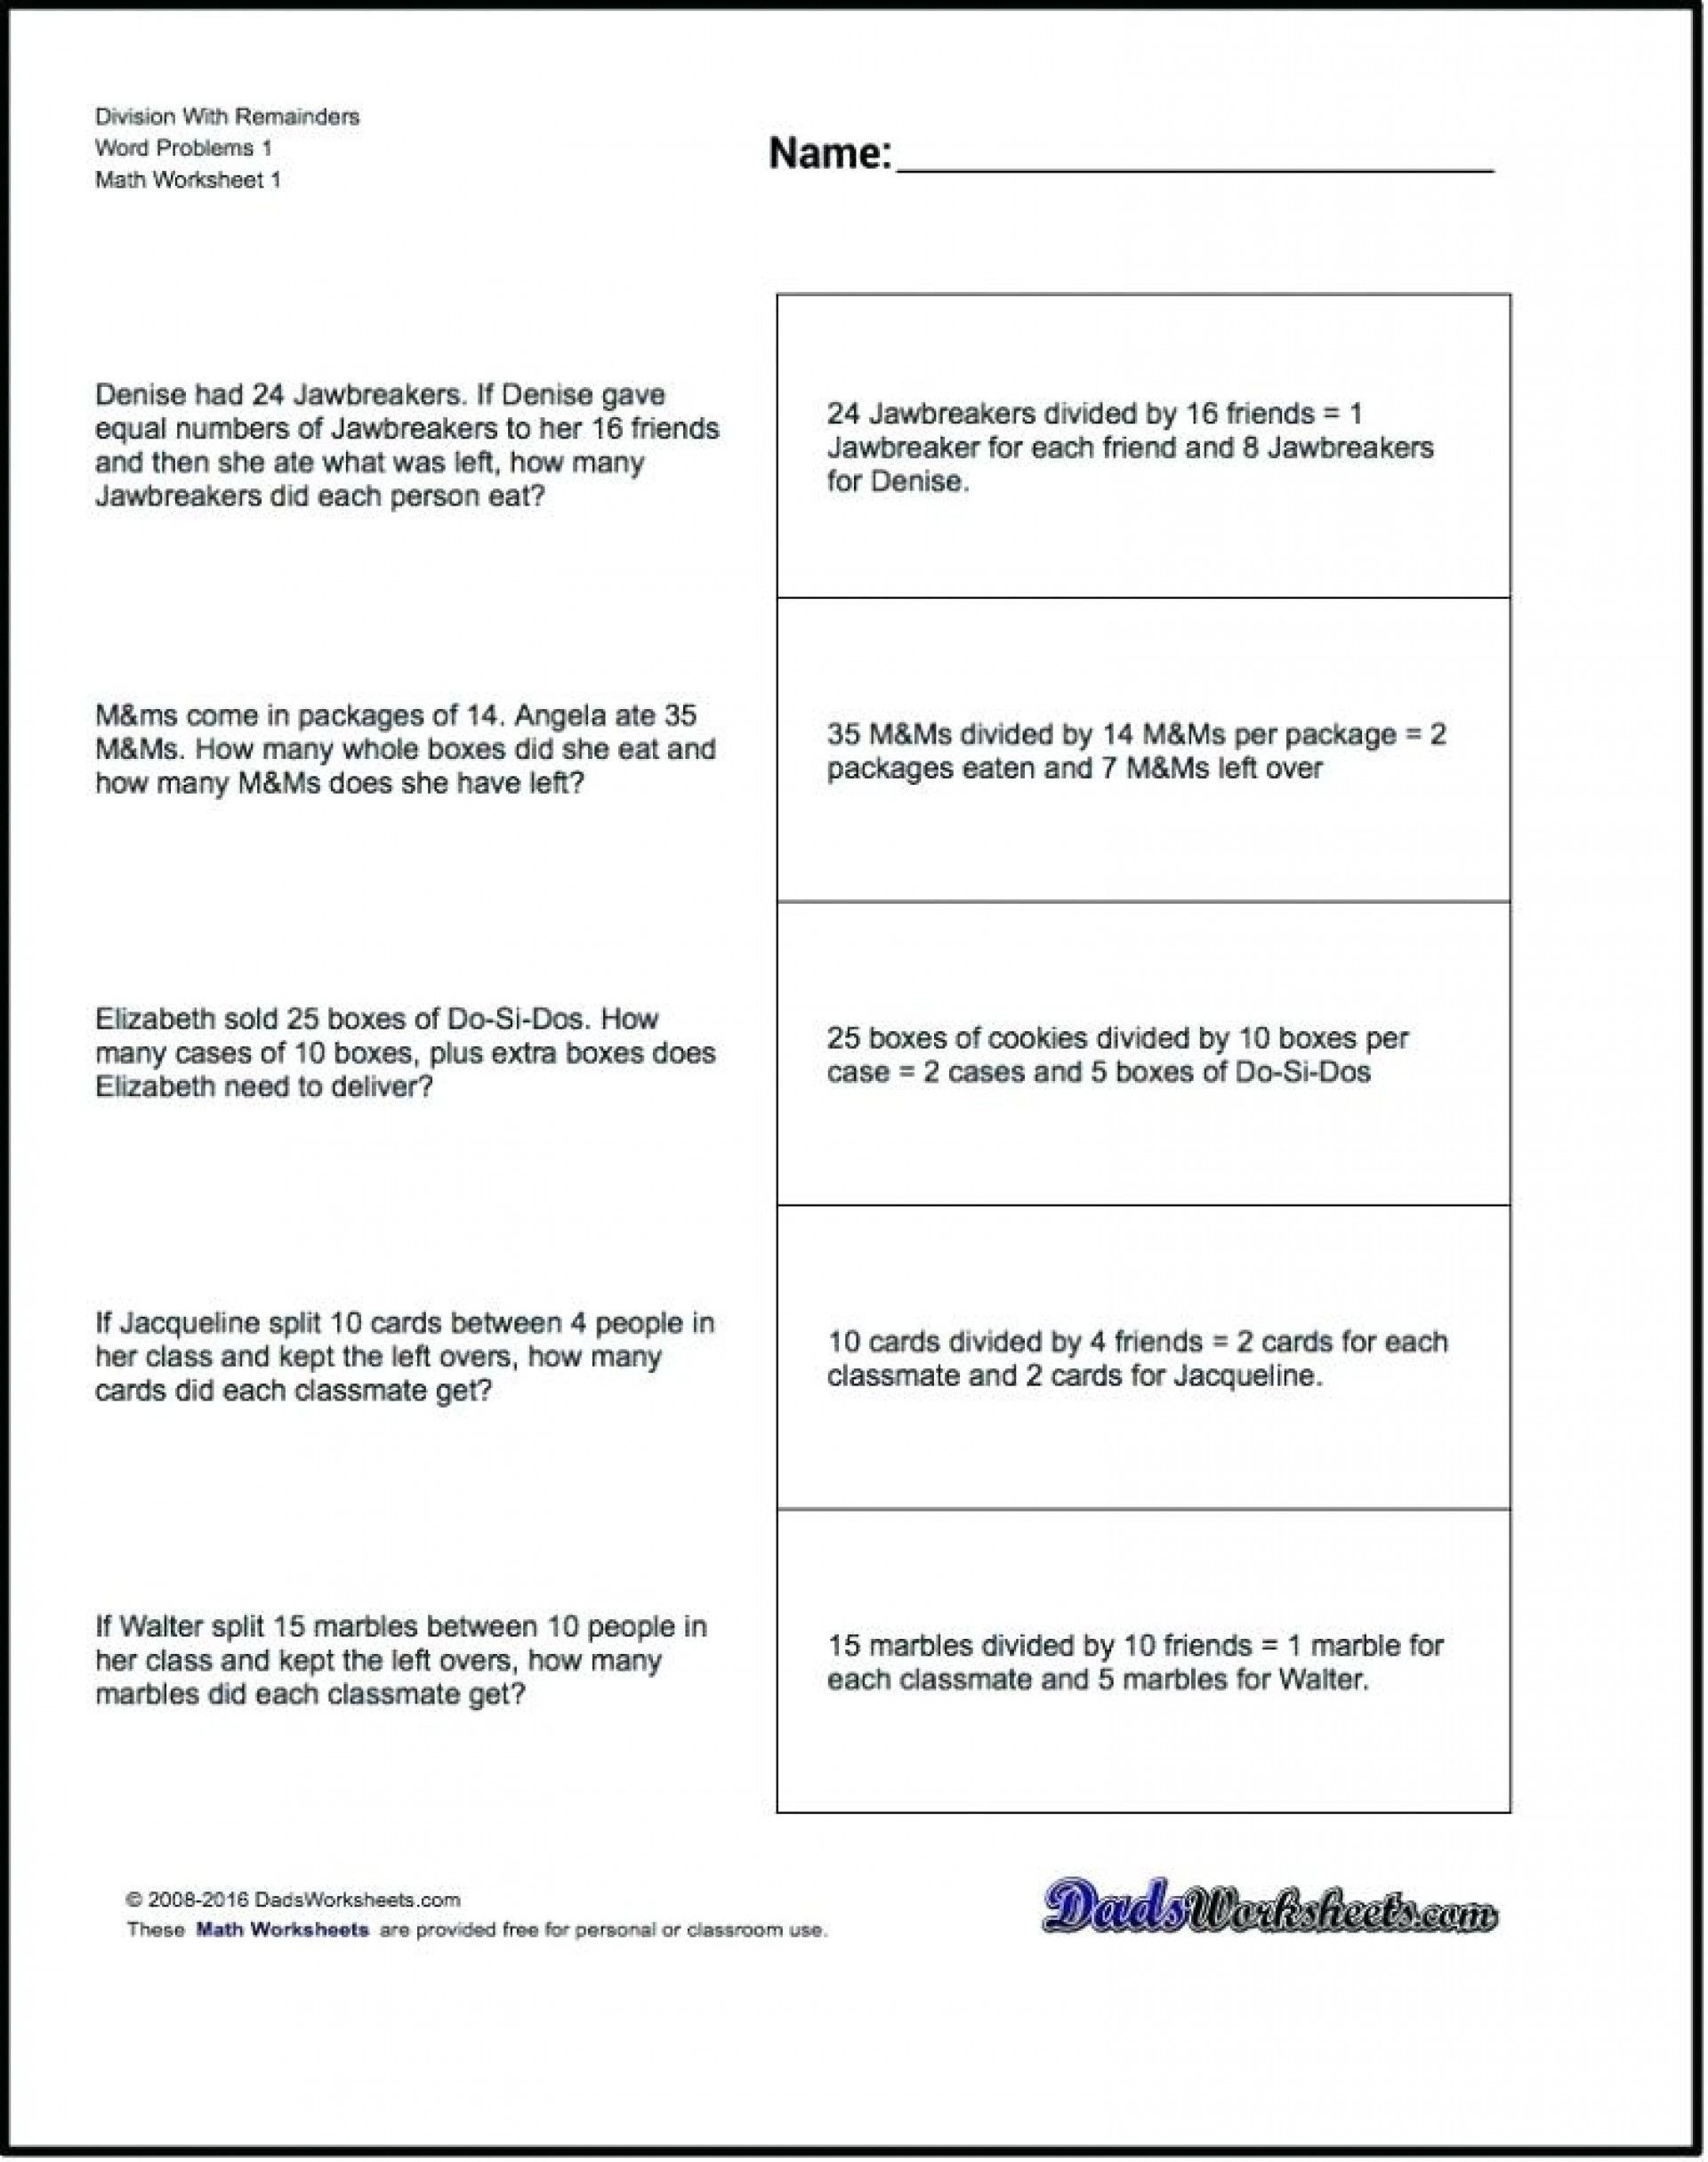 Secret Code Math Worksheets Multiplication Worksheet for 5th Grade Mon Code